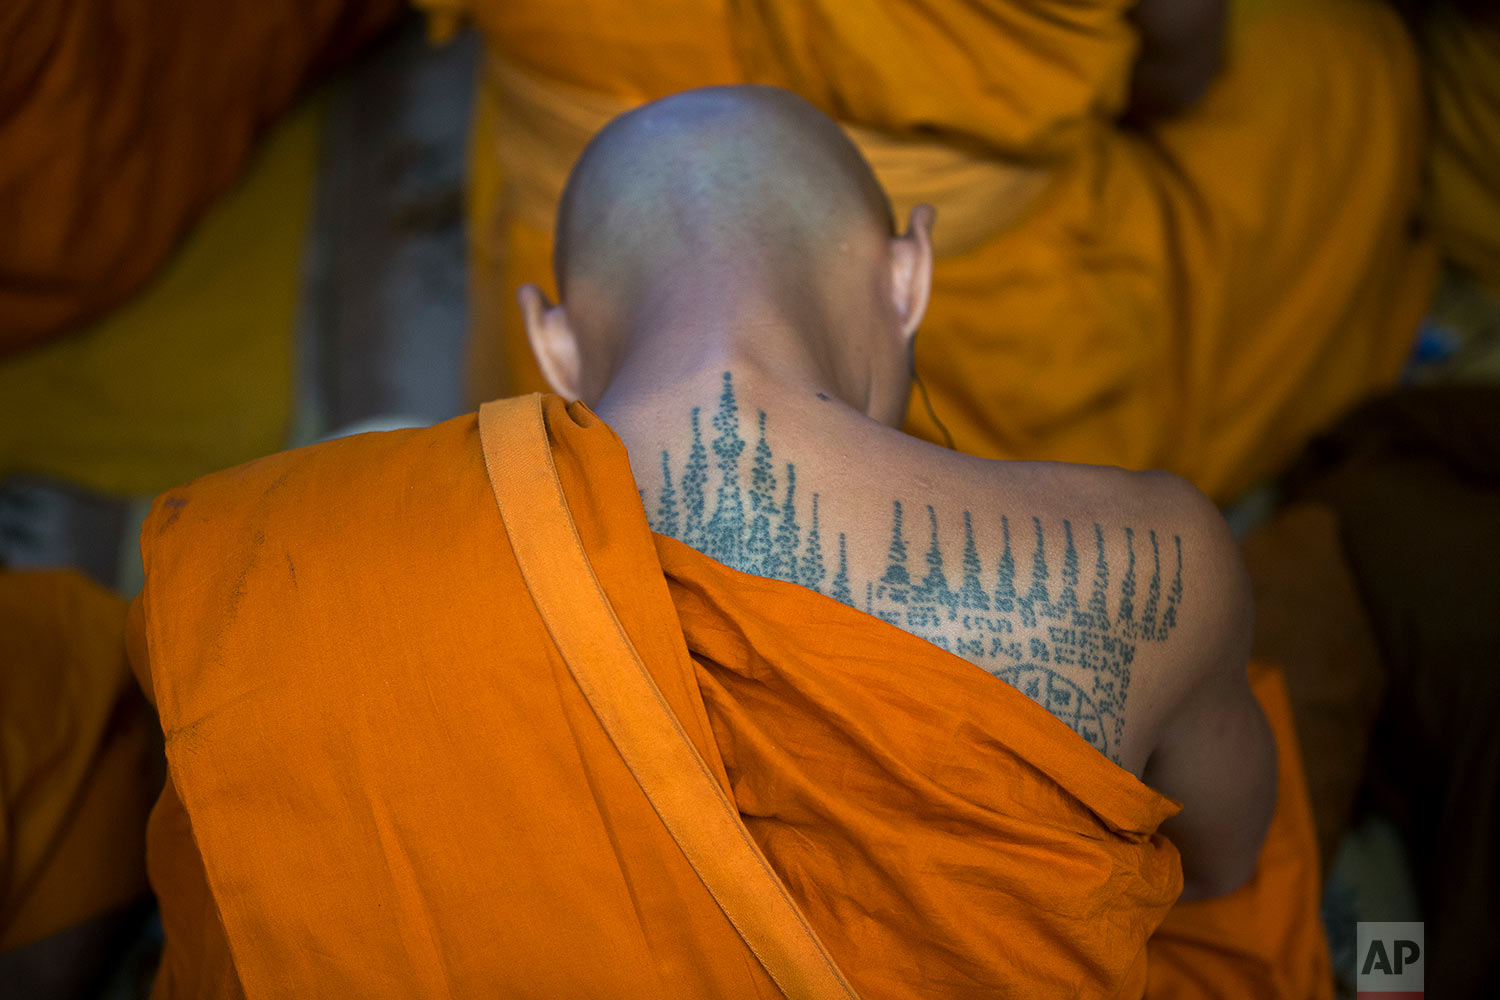 A Thai Buddhist monk with a tattooed back listens to the Tibetan spiritual leader Dalai Lama during a religious talk at the Tsuglagkhang temple in Dharmsala, India, Wednesday, June 7, 2017. Each year the Tibetan leader talks to young Tibetans on Buddhist philosophy and selected texts. The three-day talk ended Wednesday. (AP Photo/Ashwini Bhatia)